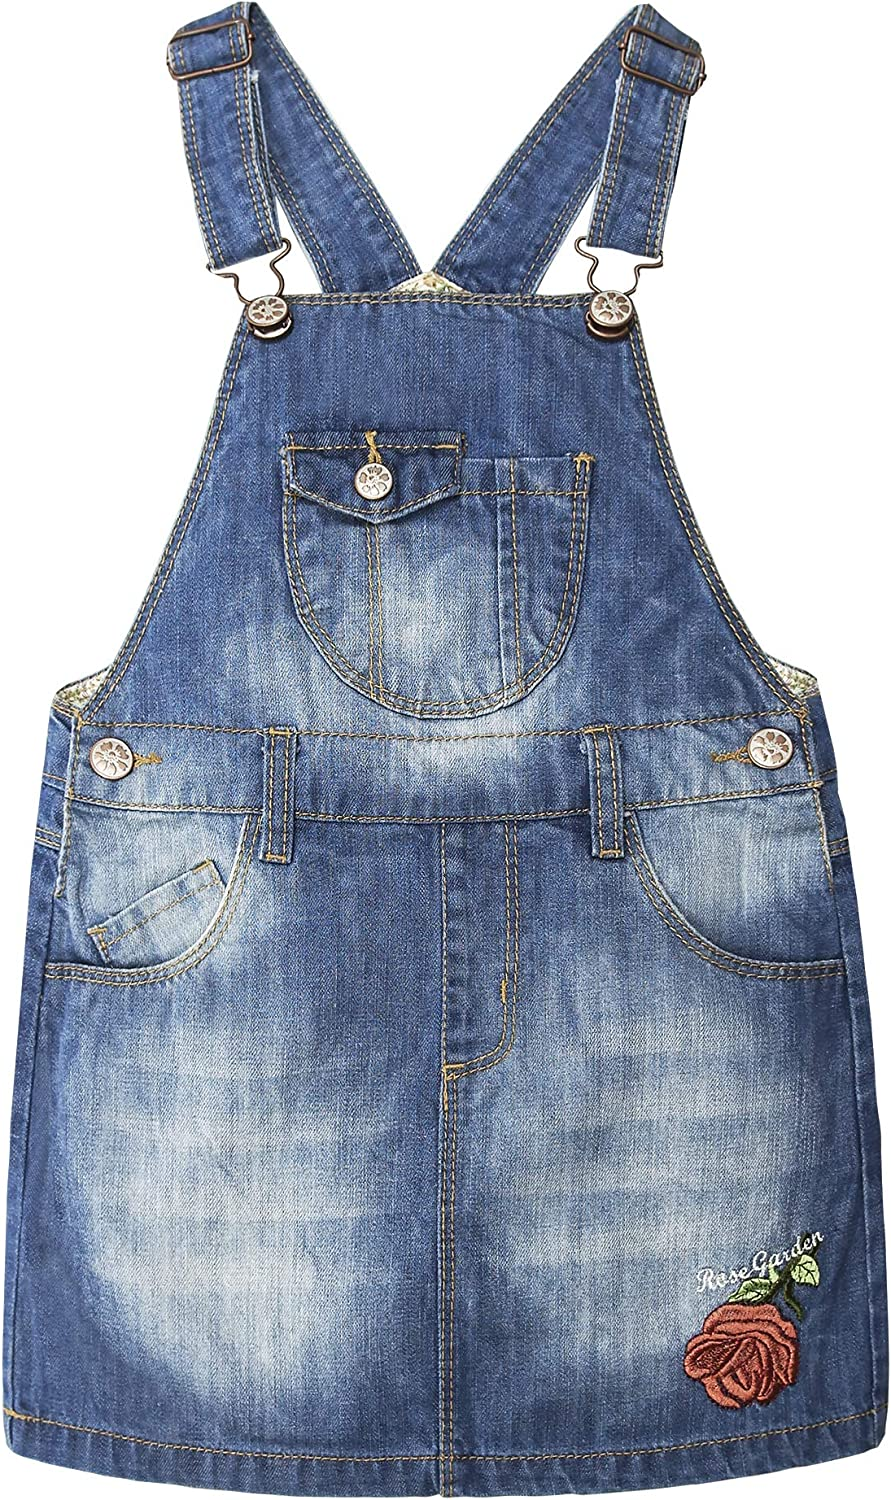 KIDSCOOL New Free Shipping SPACE Baby Max 46% OFF Denim Overalls Little Jumpe Girls Dress Jean